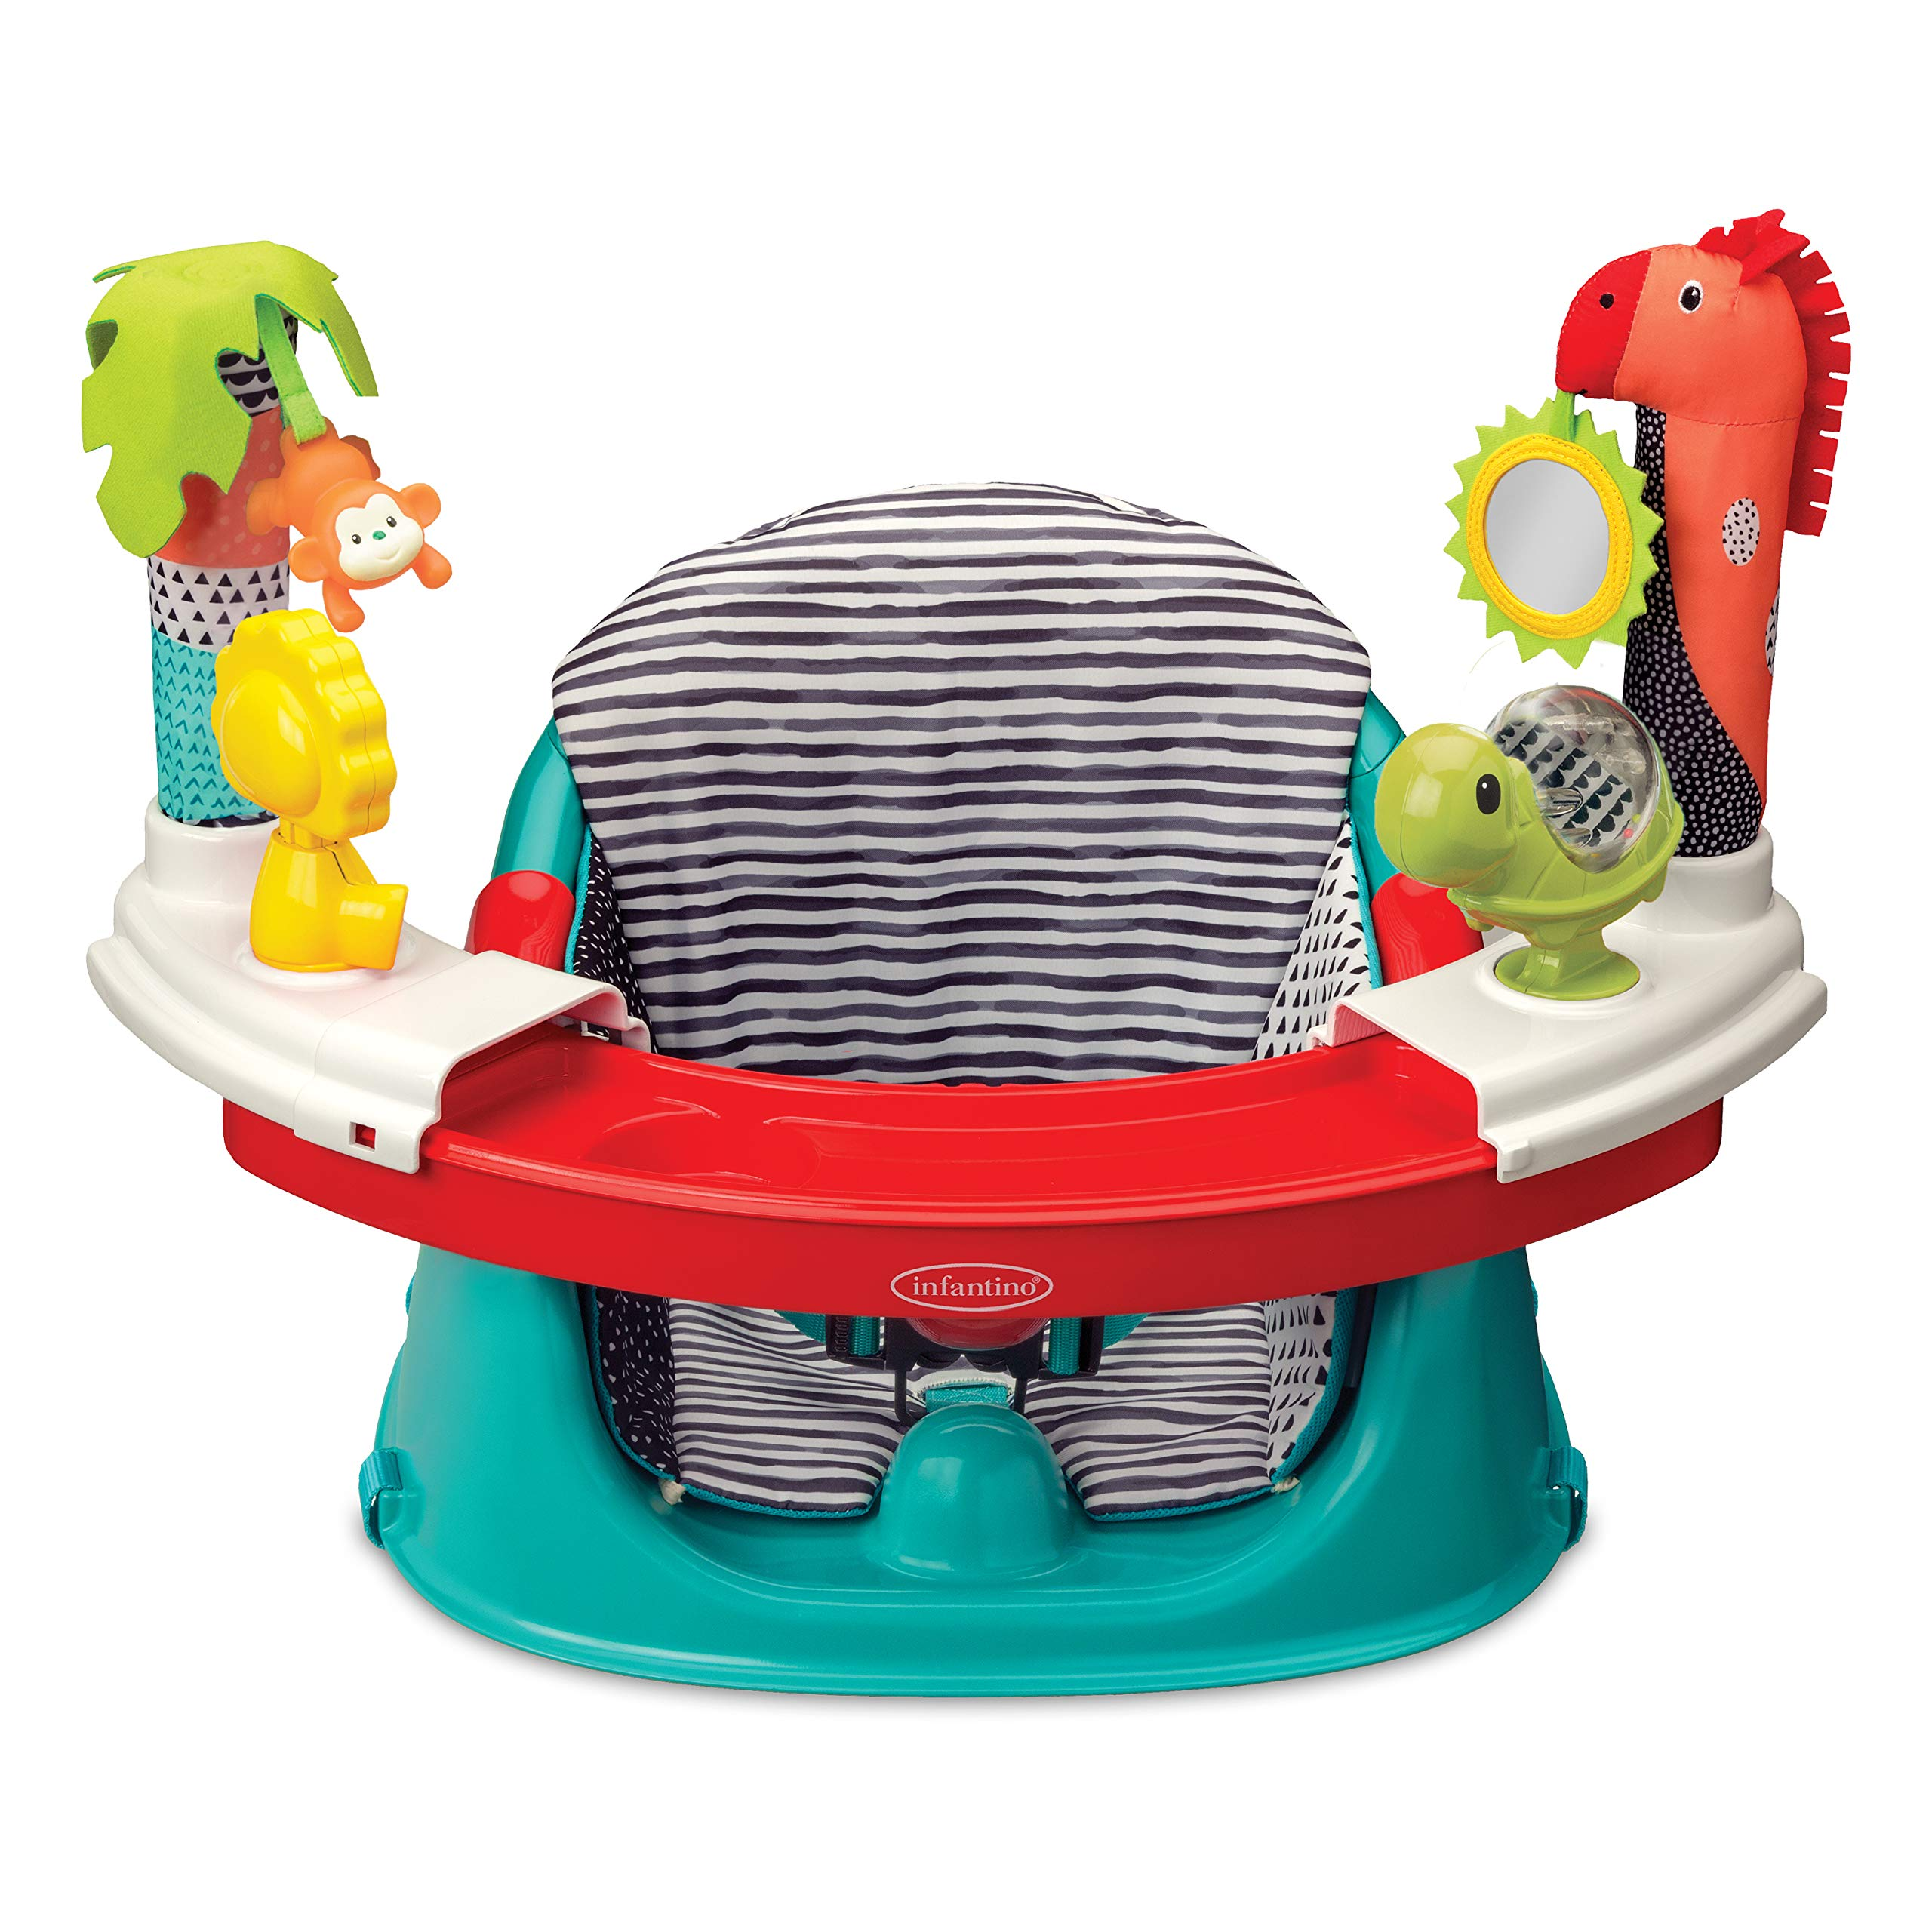 Infantino 3-in-1 Discovery Booster Seat, converts into a Booster Feeding Seat or a Baby Activity Seat by Infantino